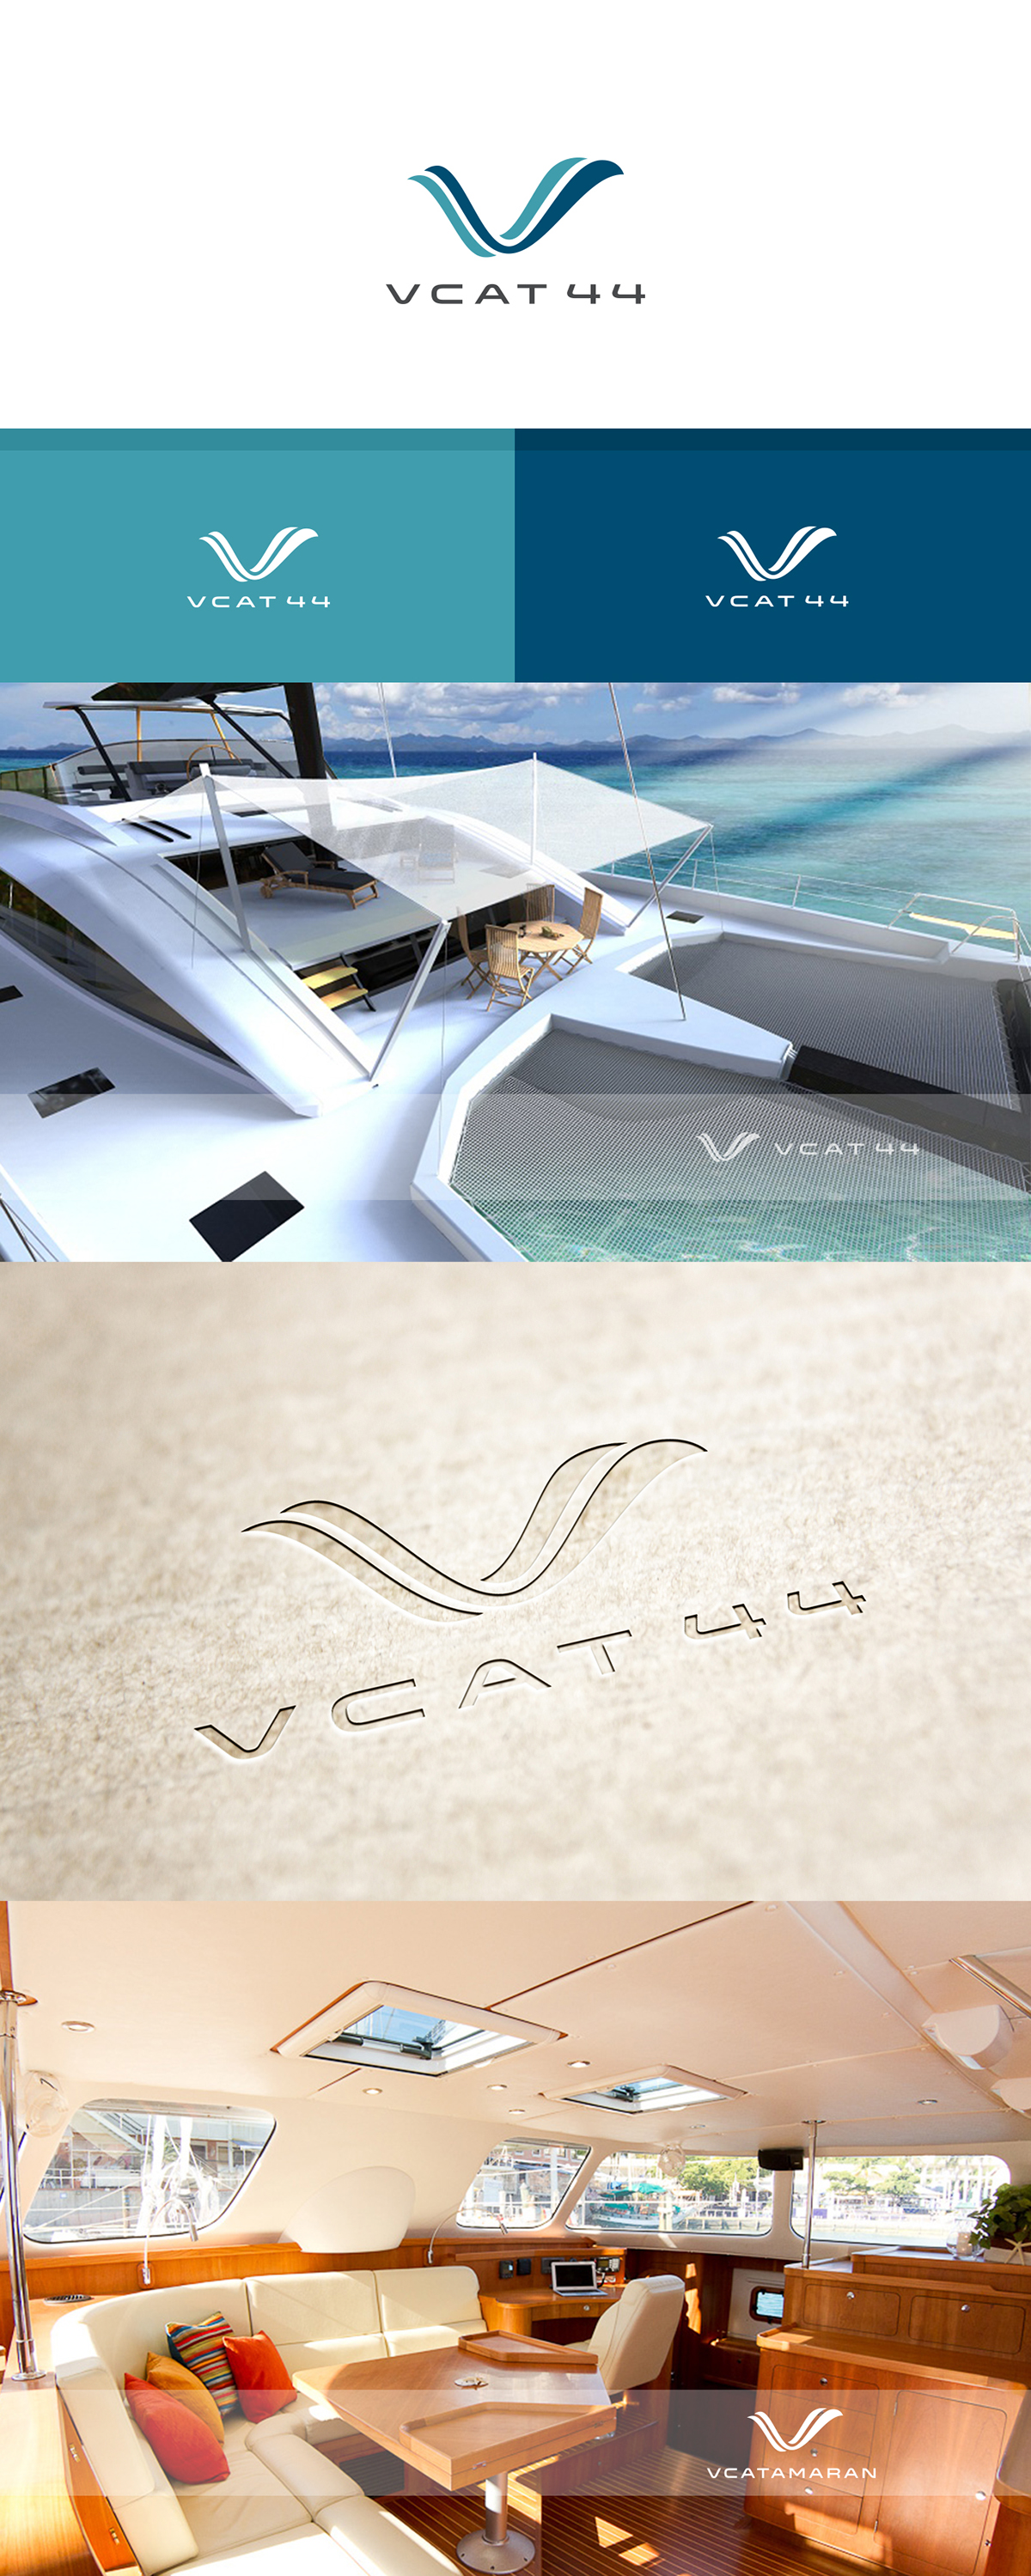 real estate sports yacht Sail management Consulting R&D Technology wine club Telecom cosmetics construction mobile cloud